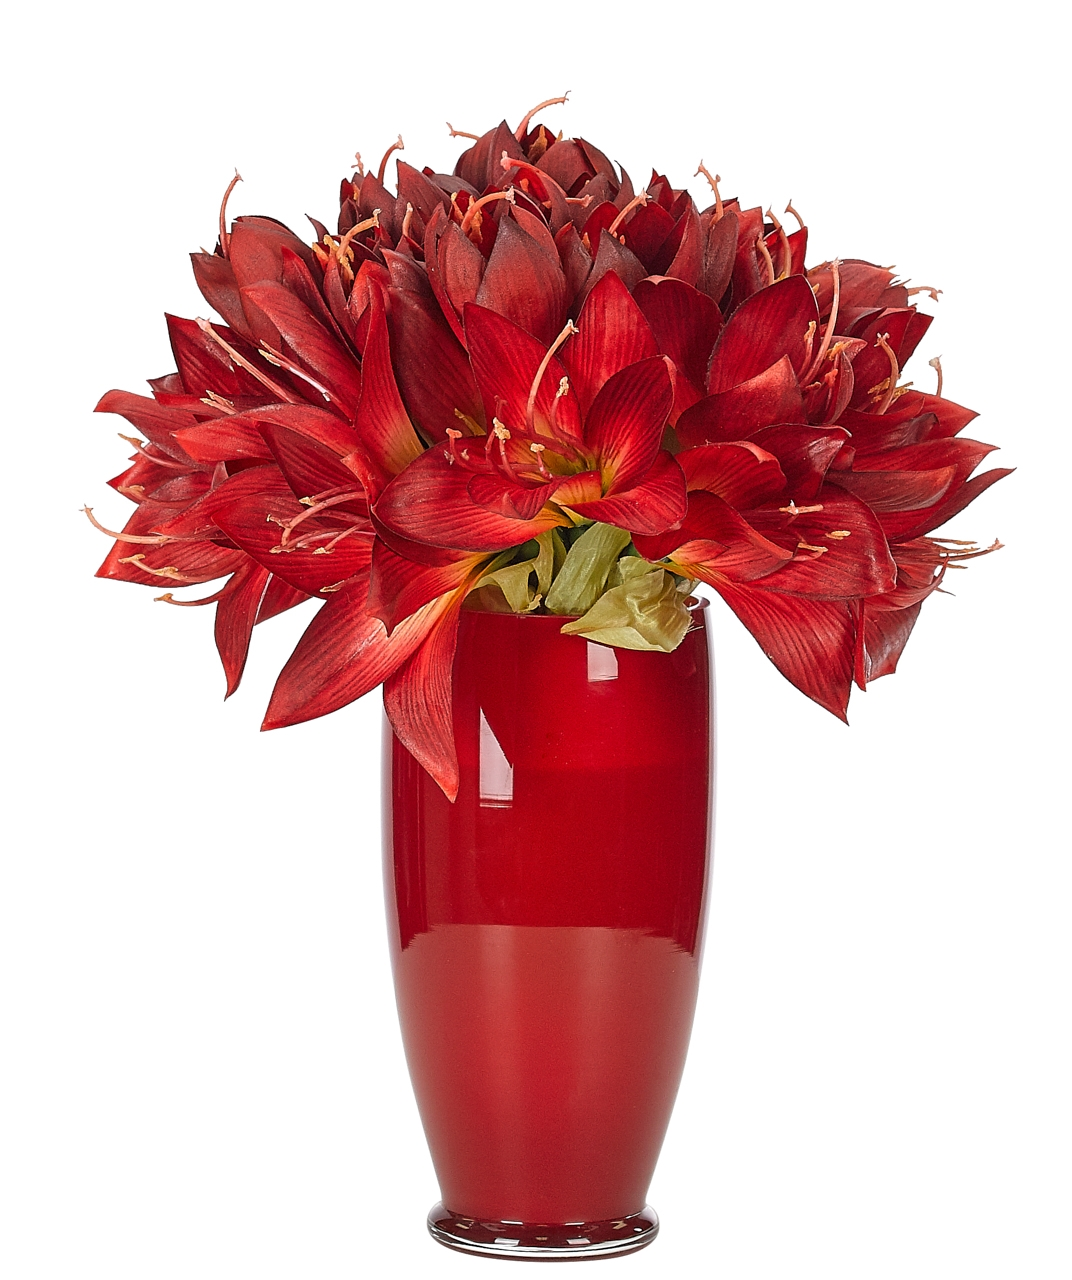 FINAL SALE | Amaryllis, Red, Glass Vase, 10wx10dx13h